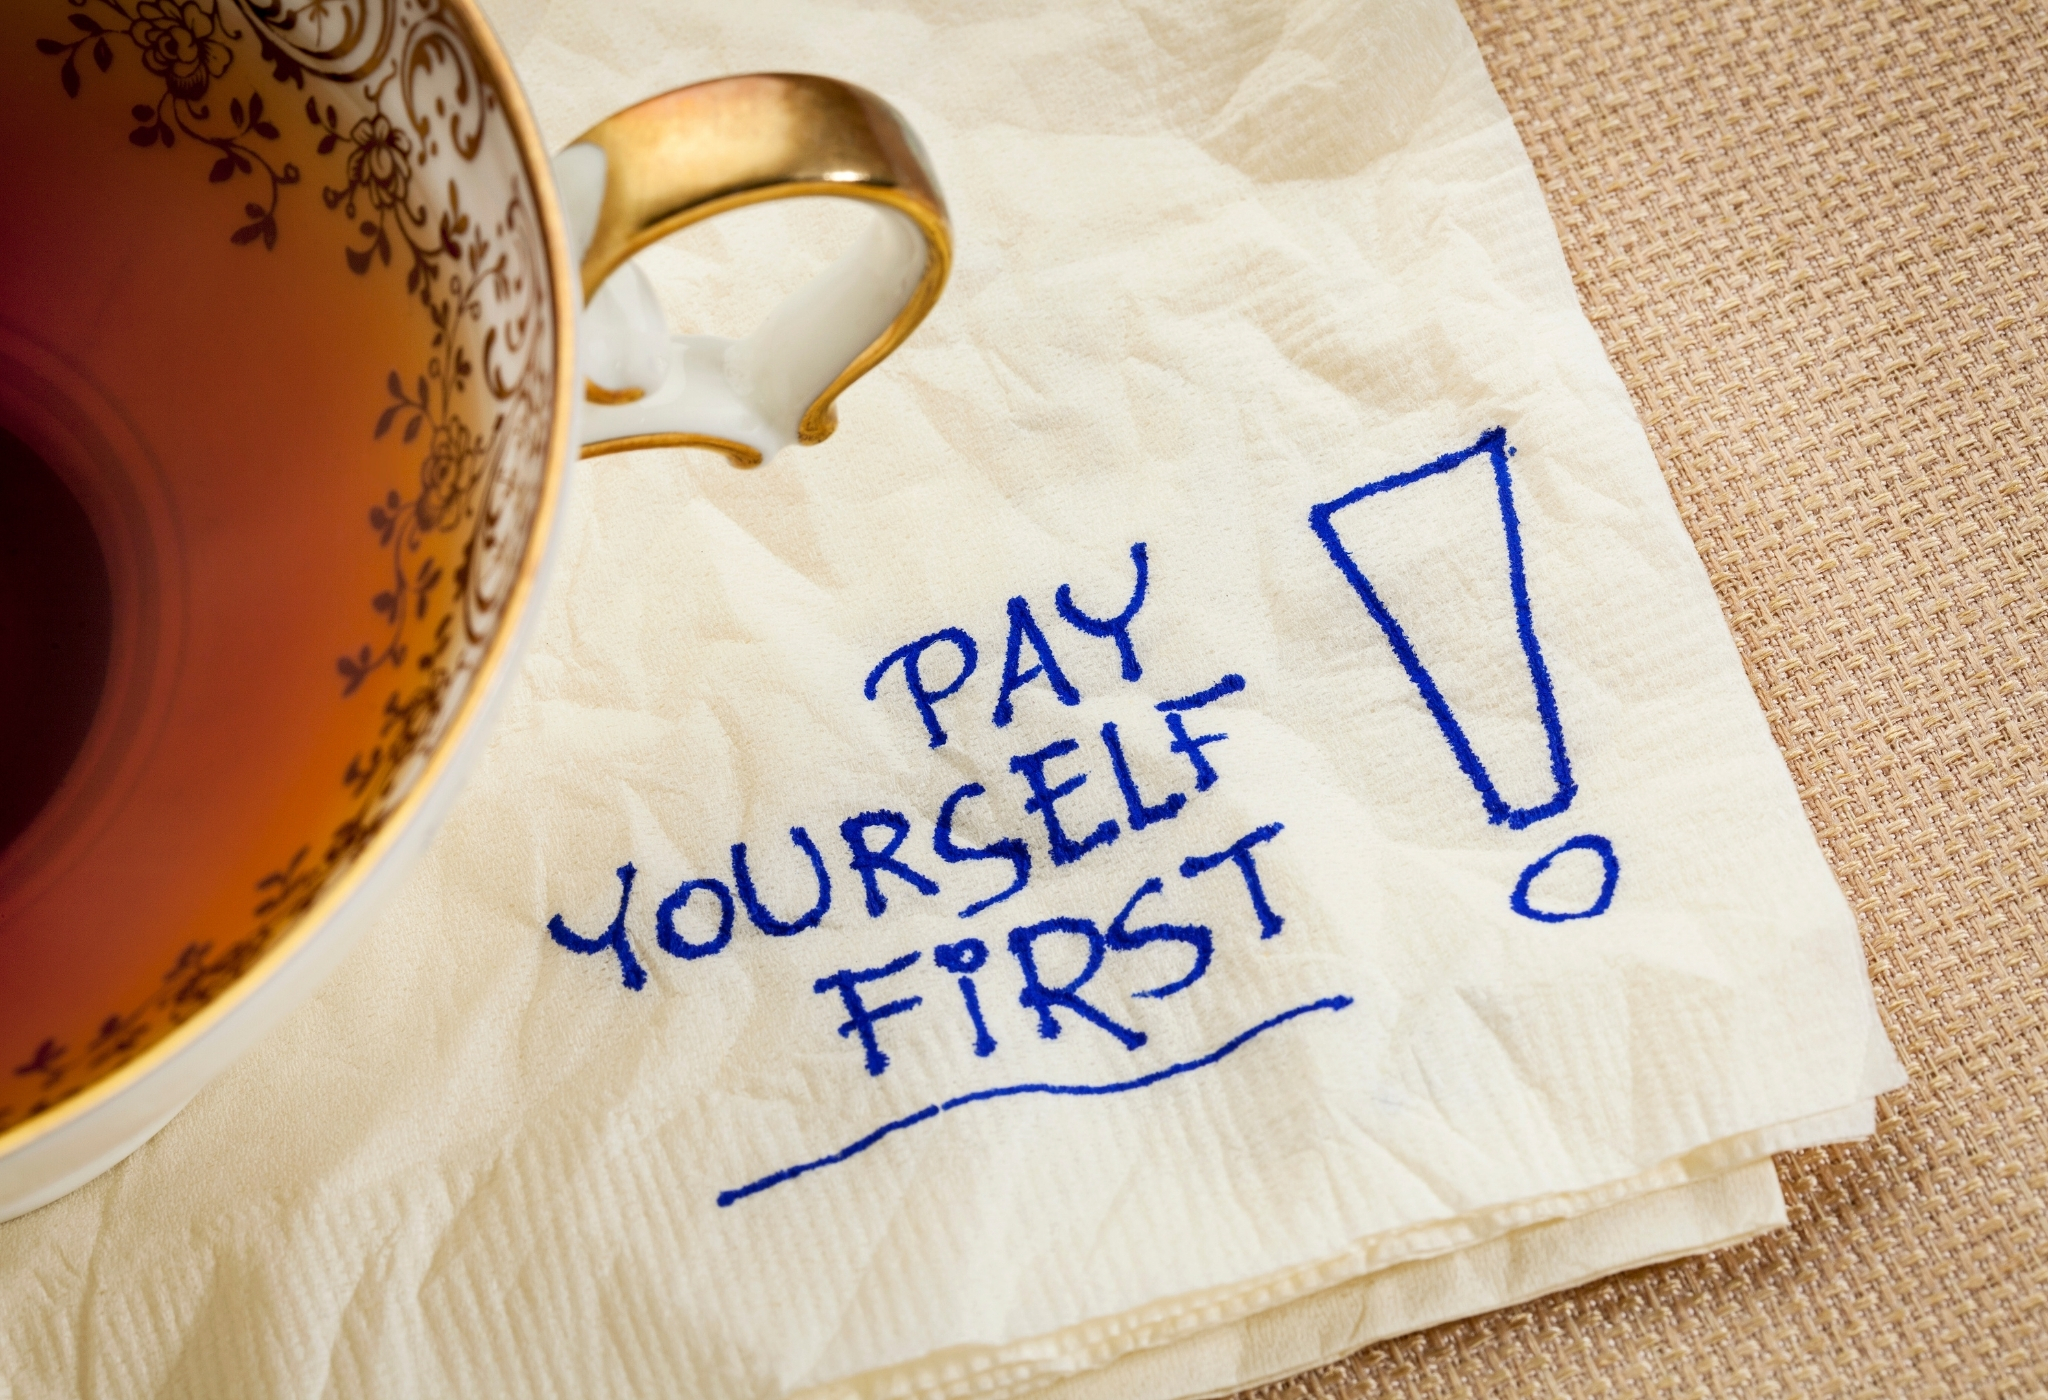 pay yourself first is advice i would give younger self